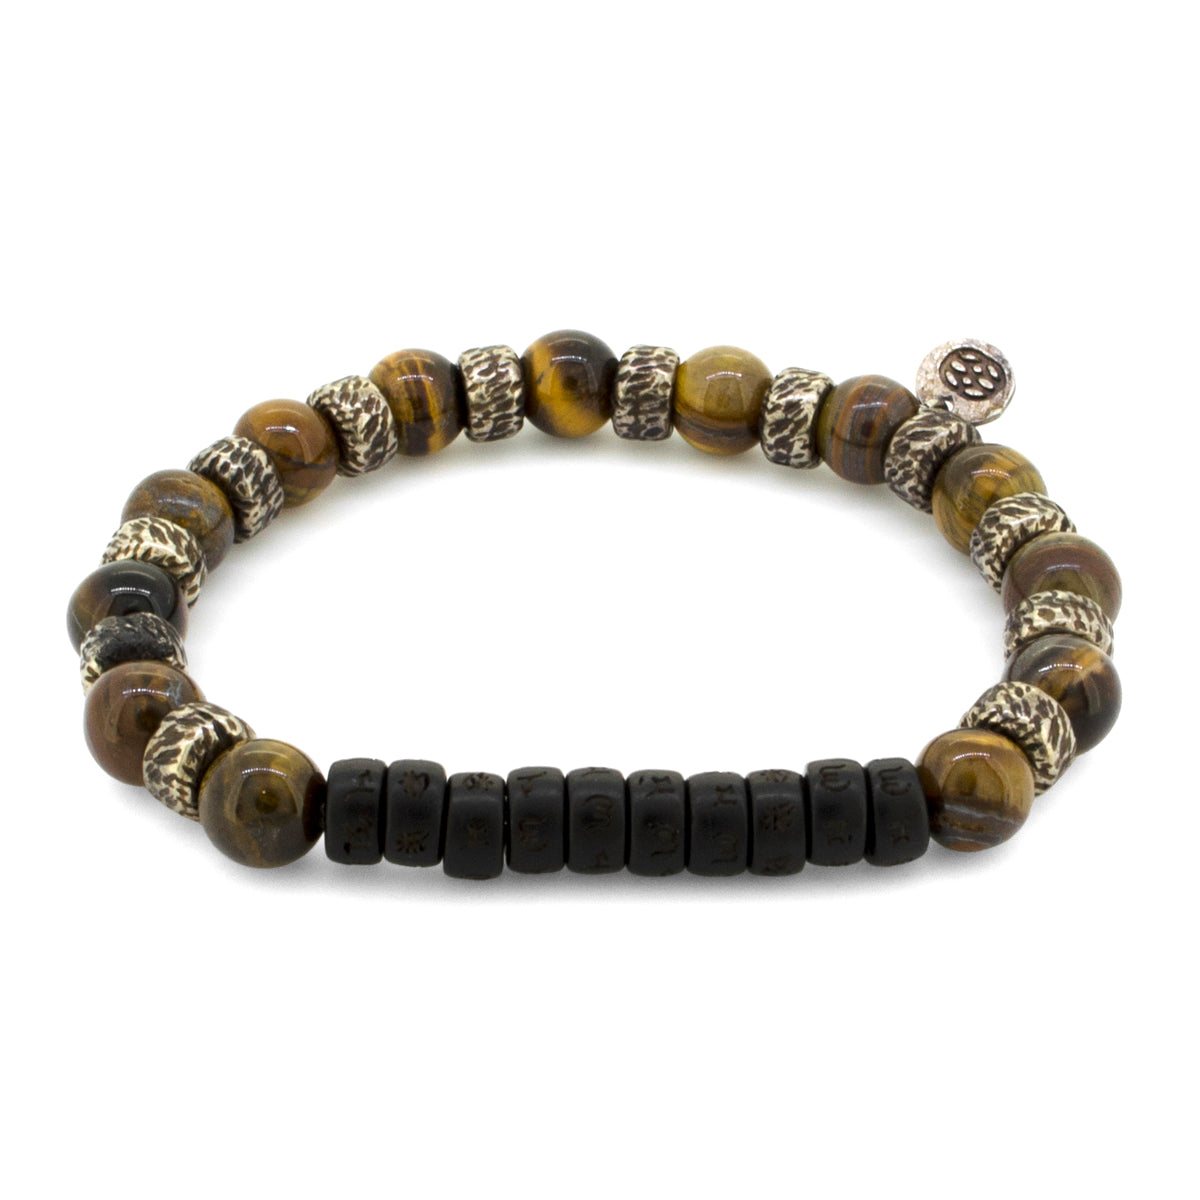 Budoni Tiger Eye 8 MM Tibetan Mantra Wood Vintage